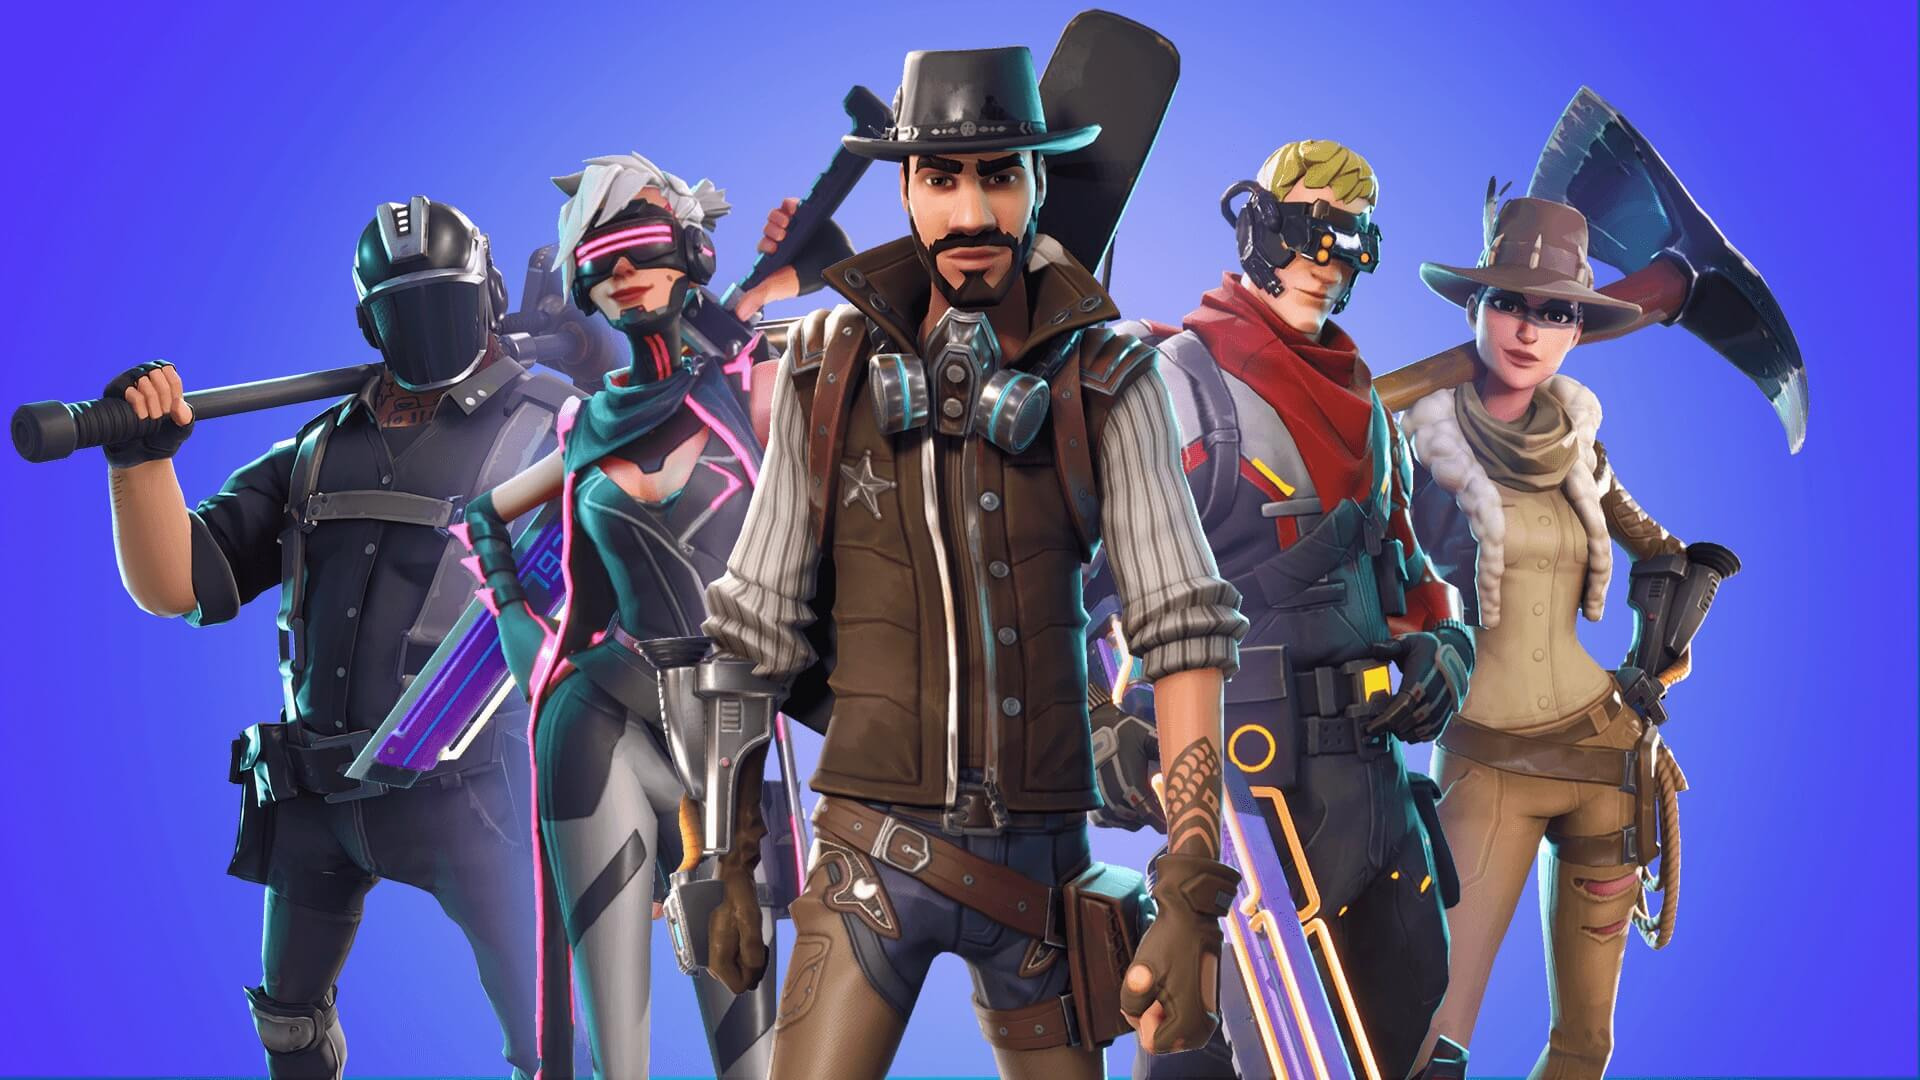 Fortnite's Cup and $ 30 million World prize